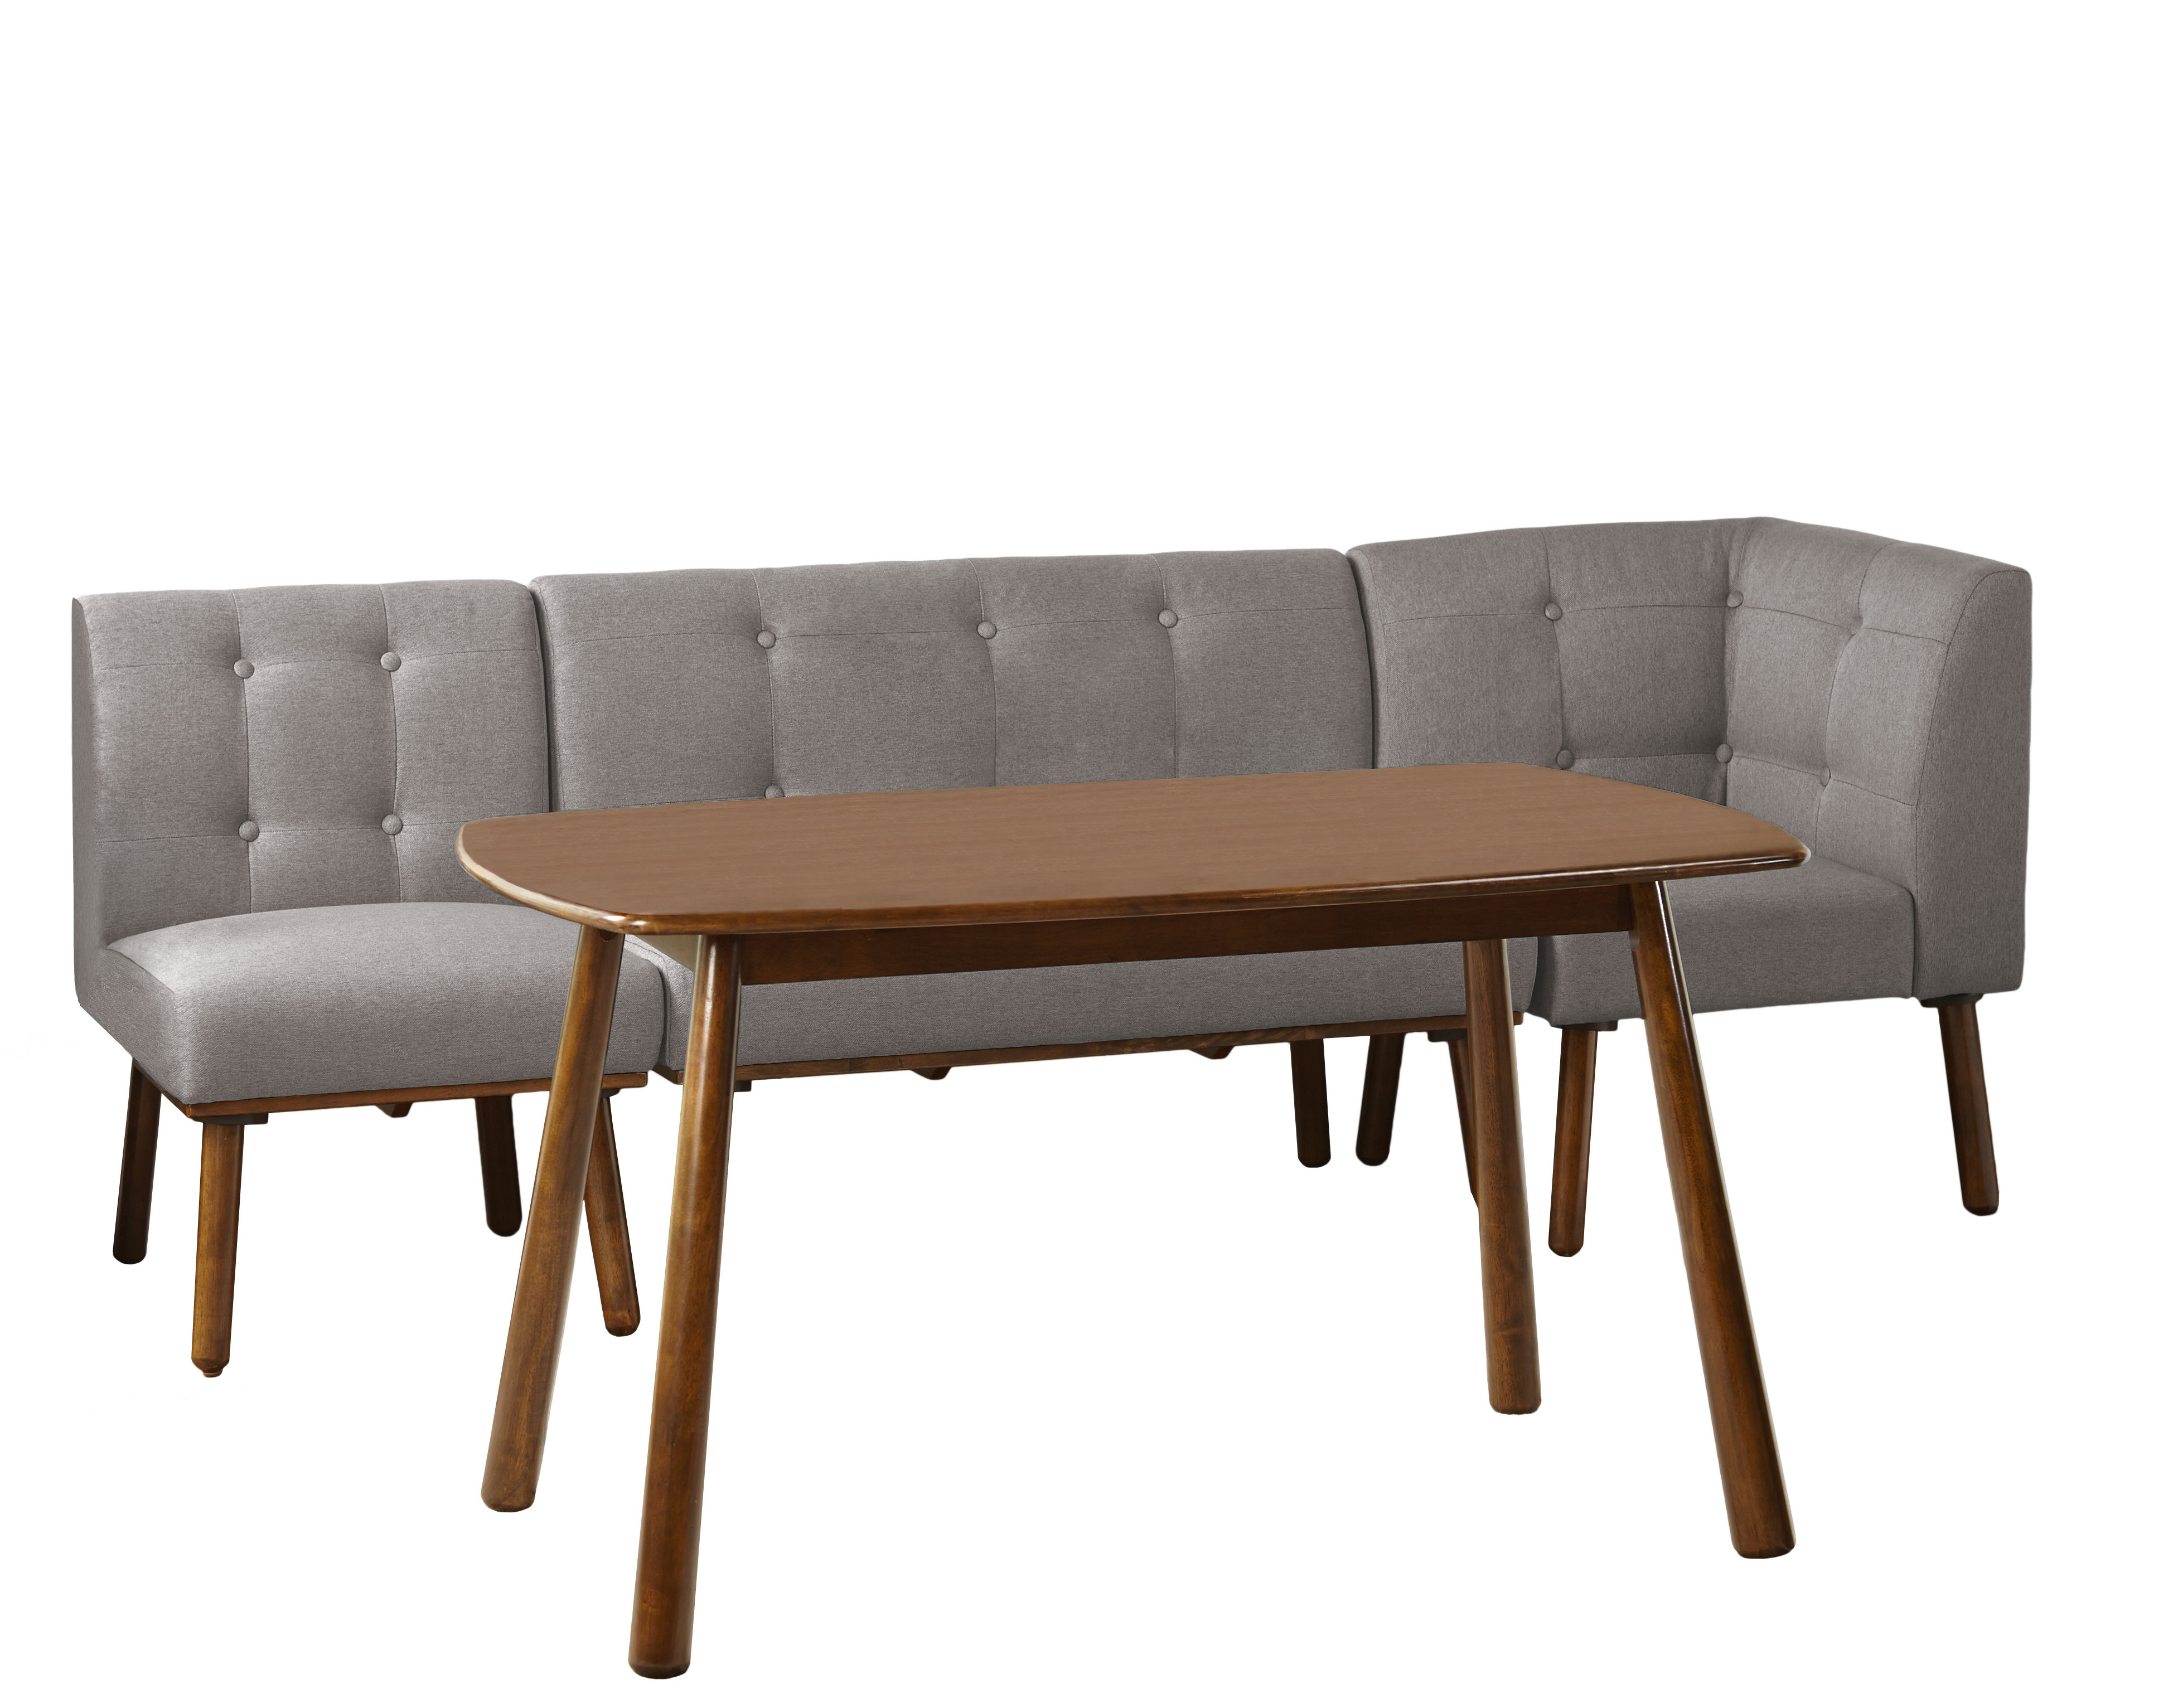 Most Popular Lillard 3 Piece Breakfast Nook Dining Sets With Bucci 4 Piece Breakfast Nook Dining Set (View 21 of 25)